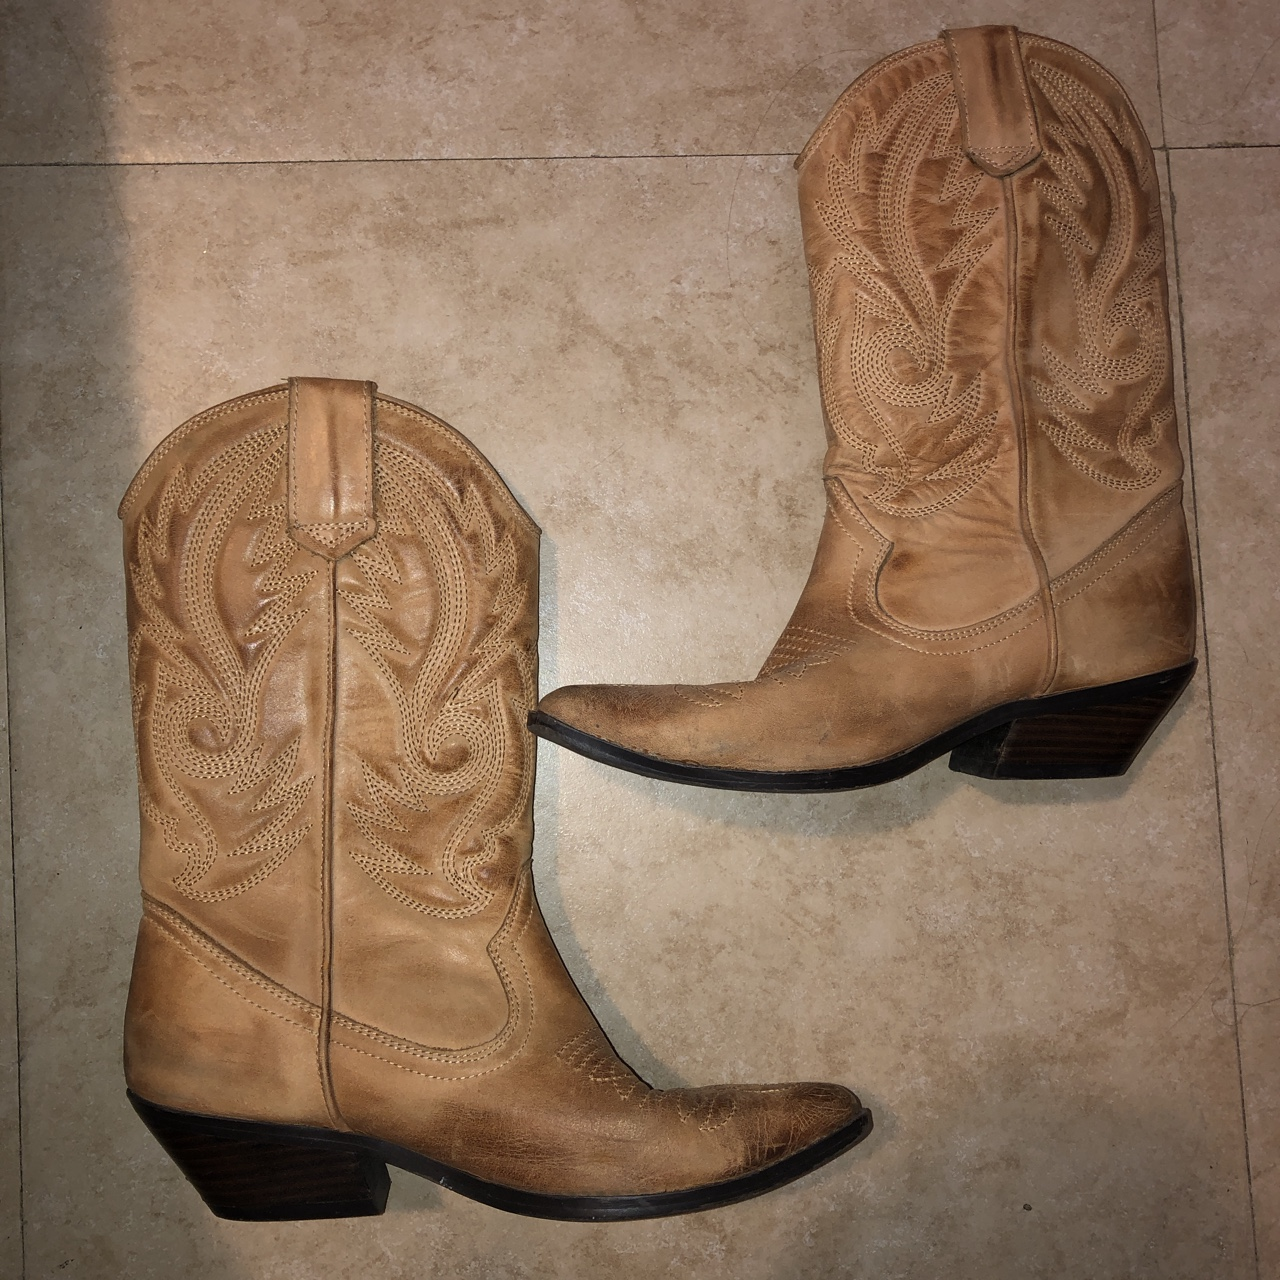 ed8252cff56 Tan/Neutral Cowboy Boots from Aldo, the style is... - Depop